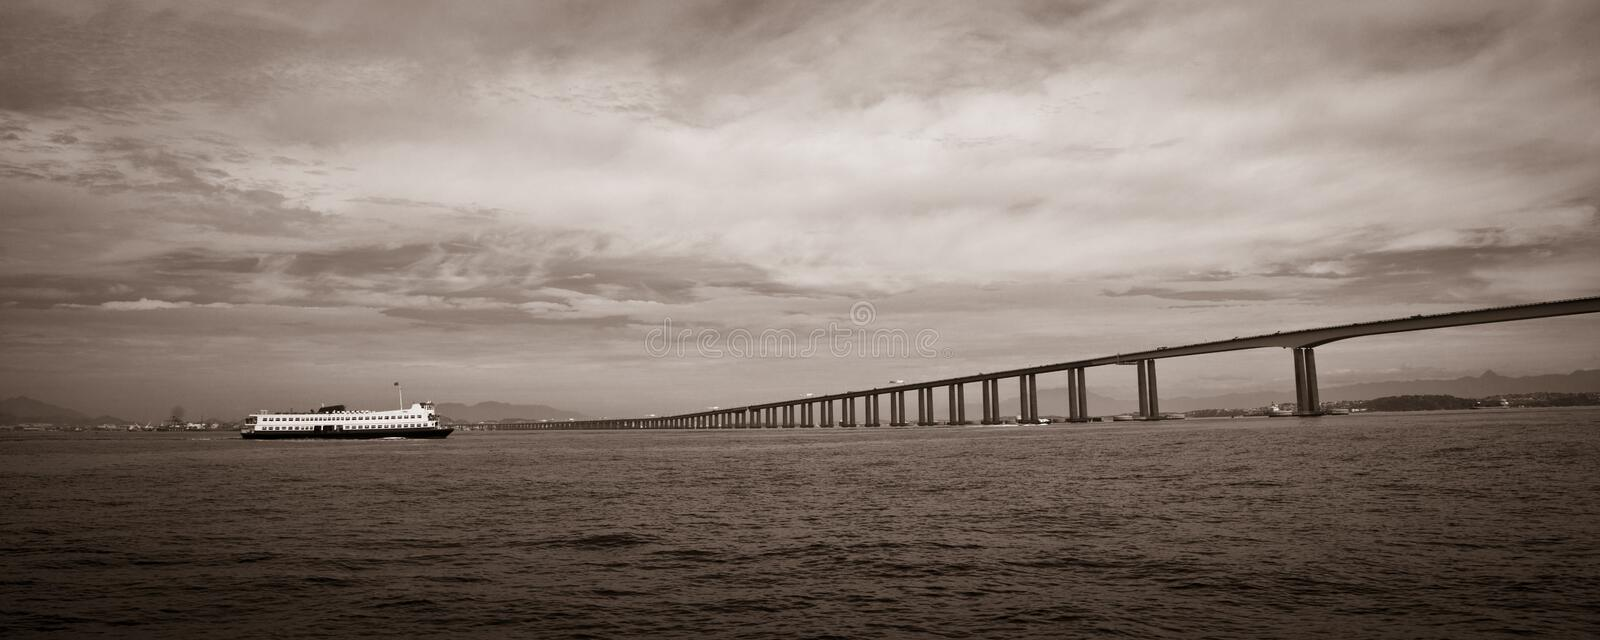 Rio-Niteroi Bridge Royalty Free Stock Images